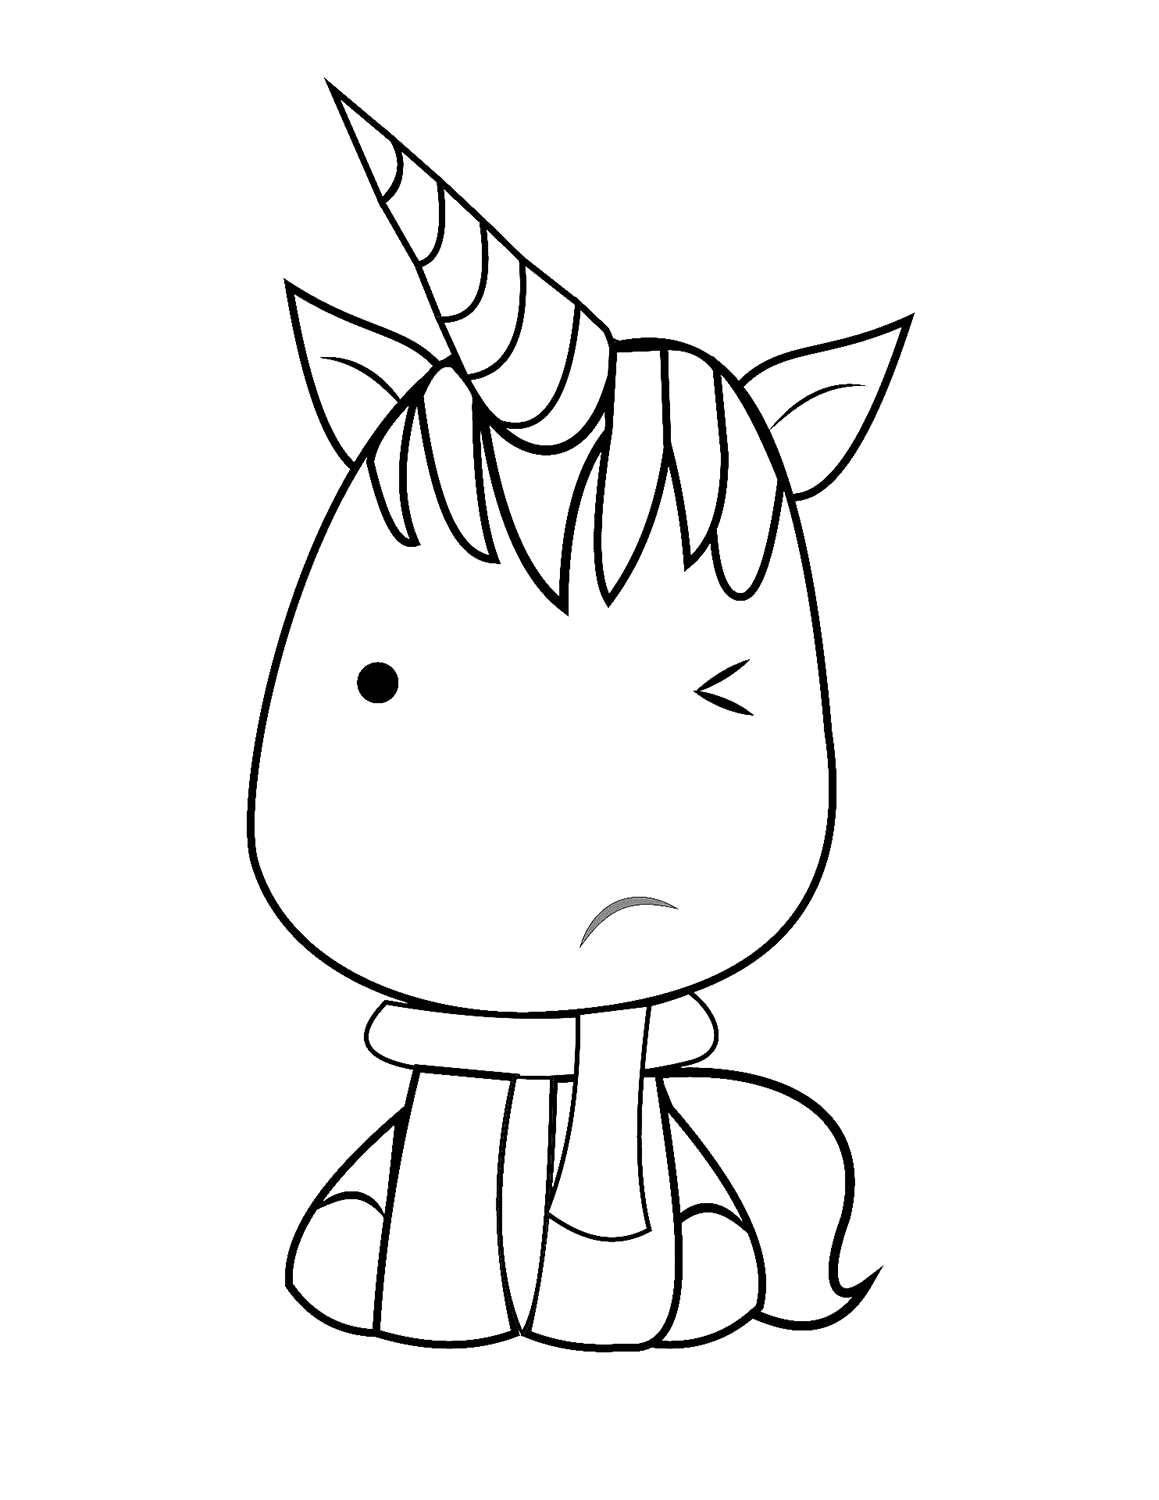 unicorn galaxy coloring pages unicornio para colorear kawaii imagen para colorear unicorn galaxy coloring pages